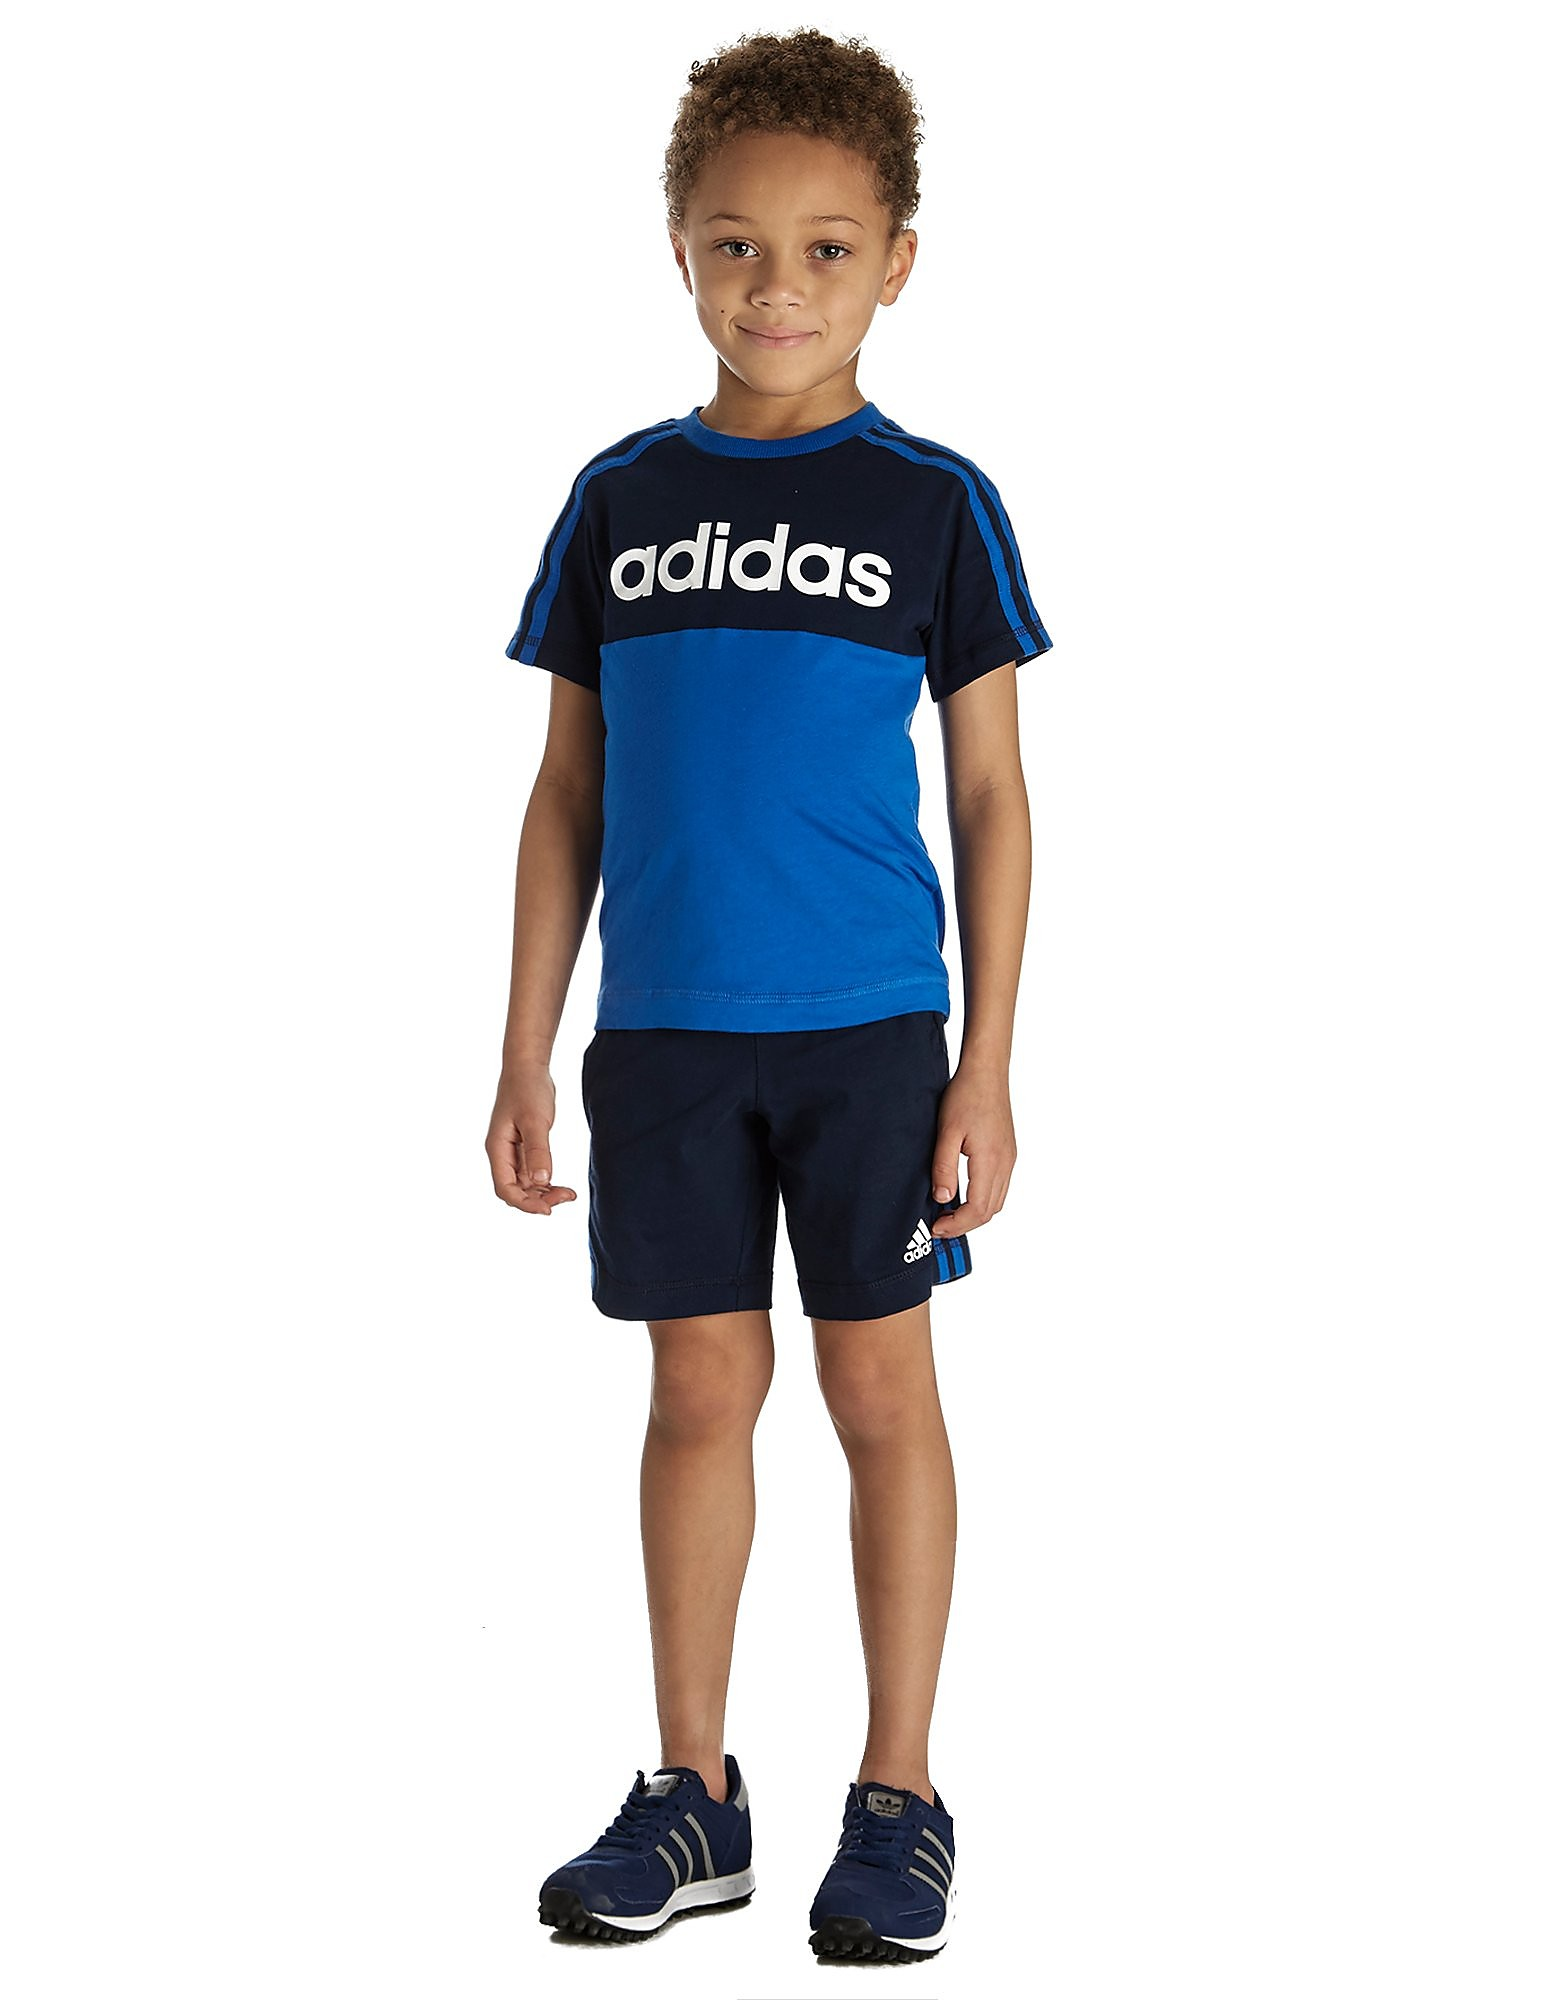 adidas Linear T-Shirt/Shorts Set Children